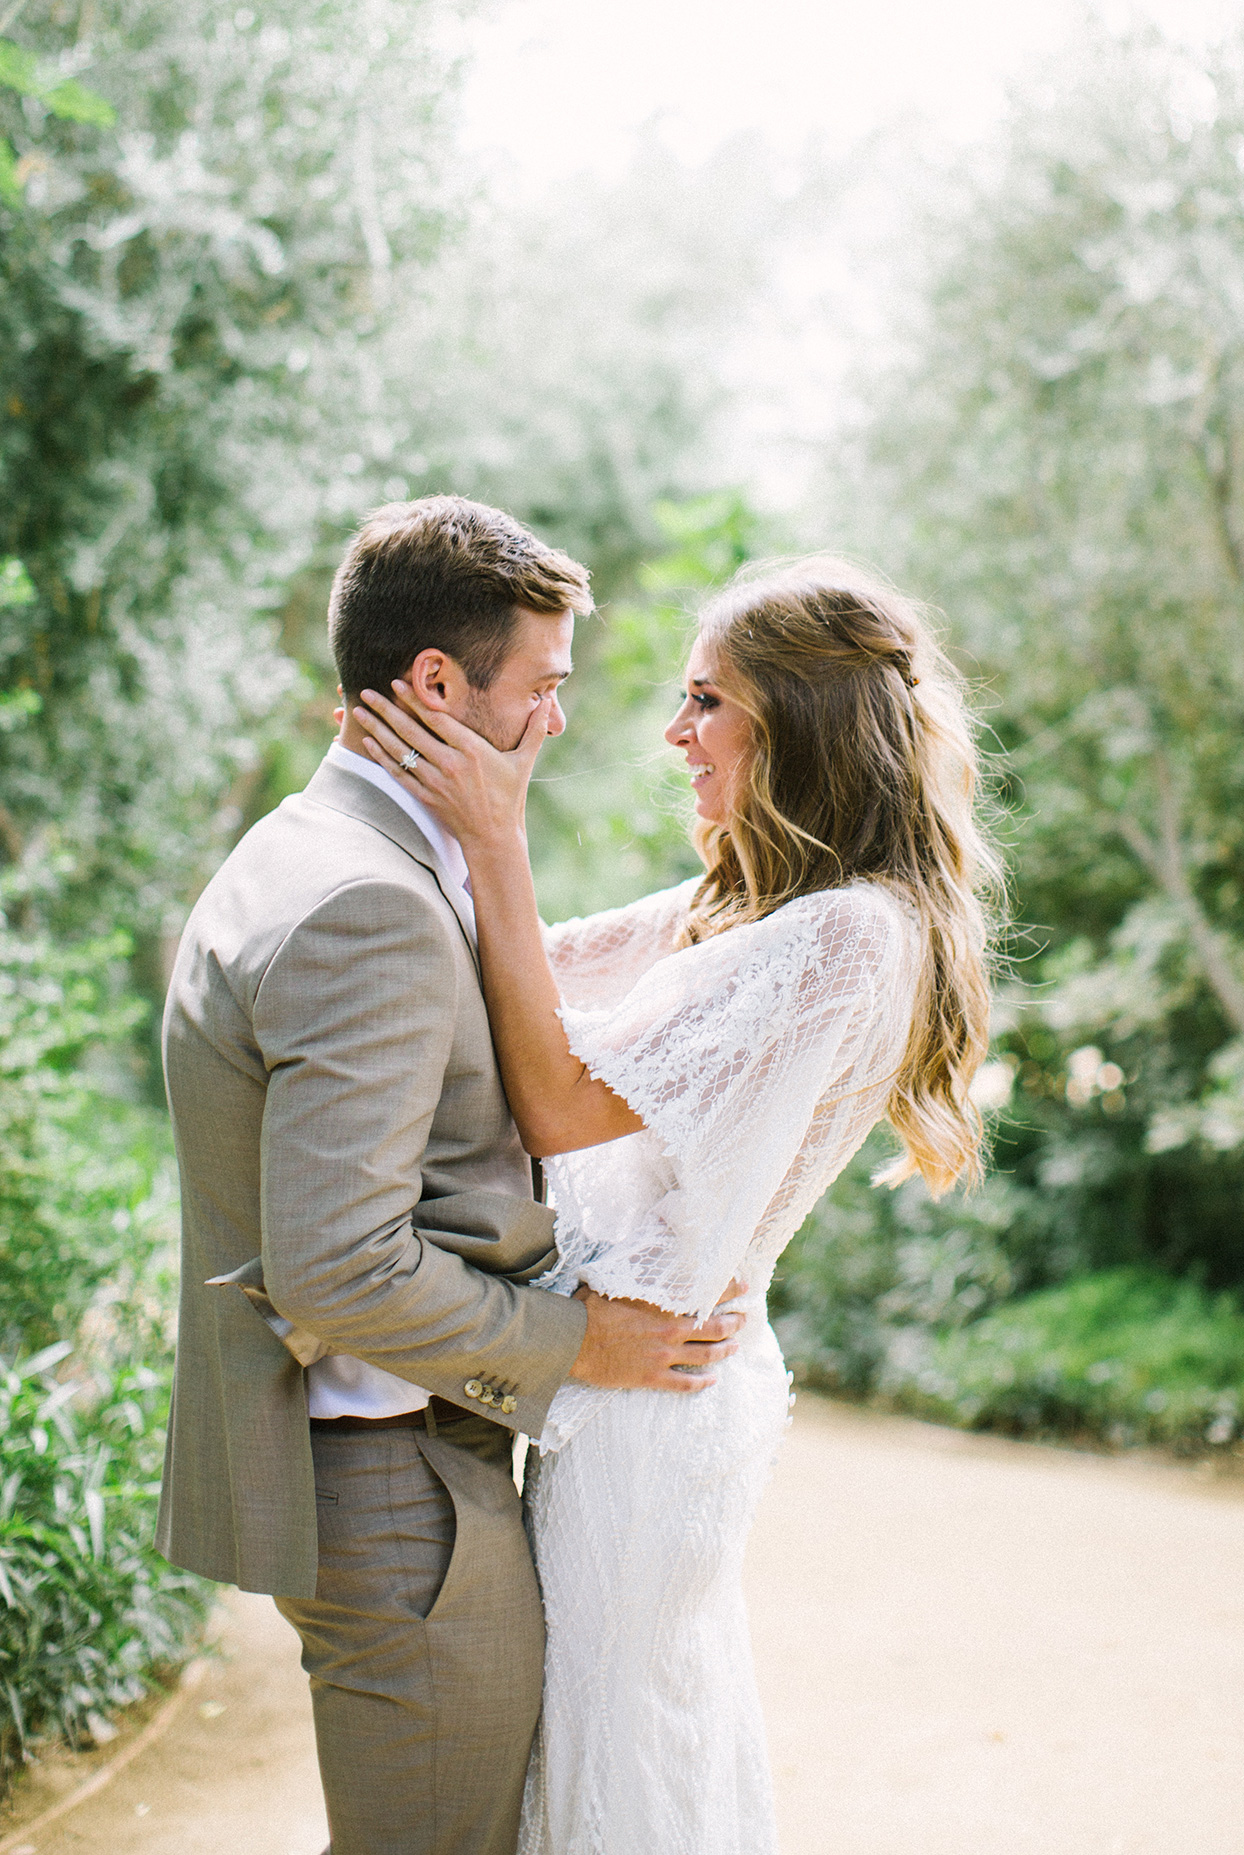 bride and groom embracing during first look on garden path